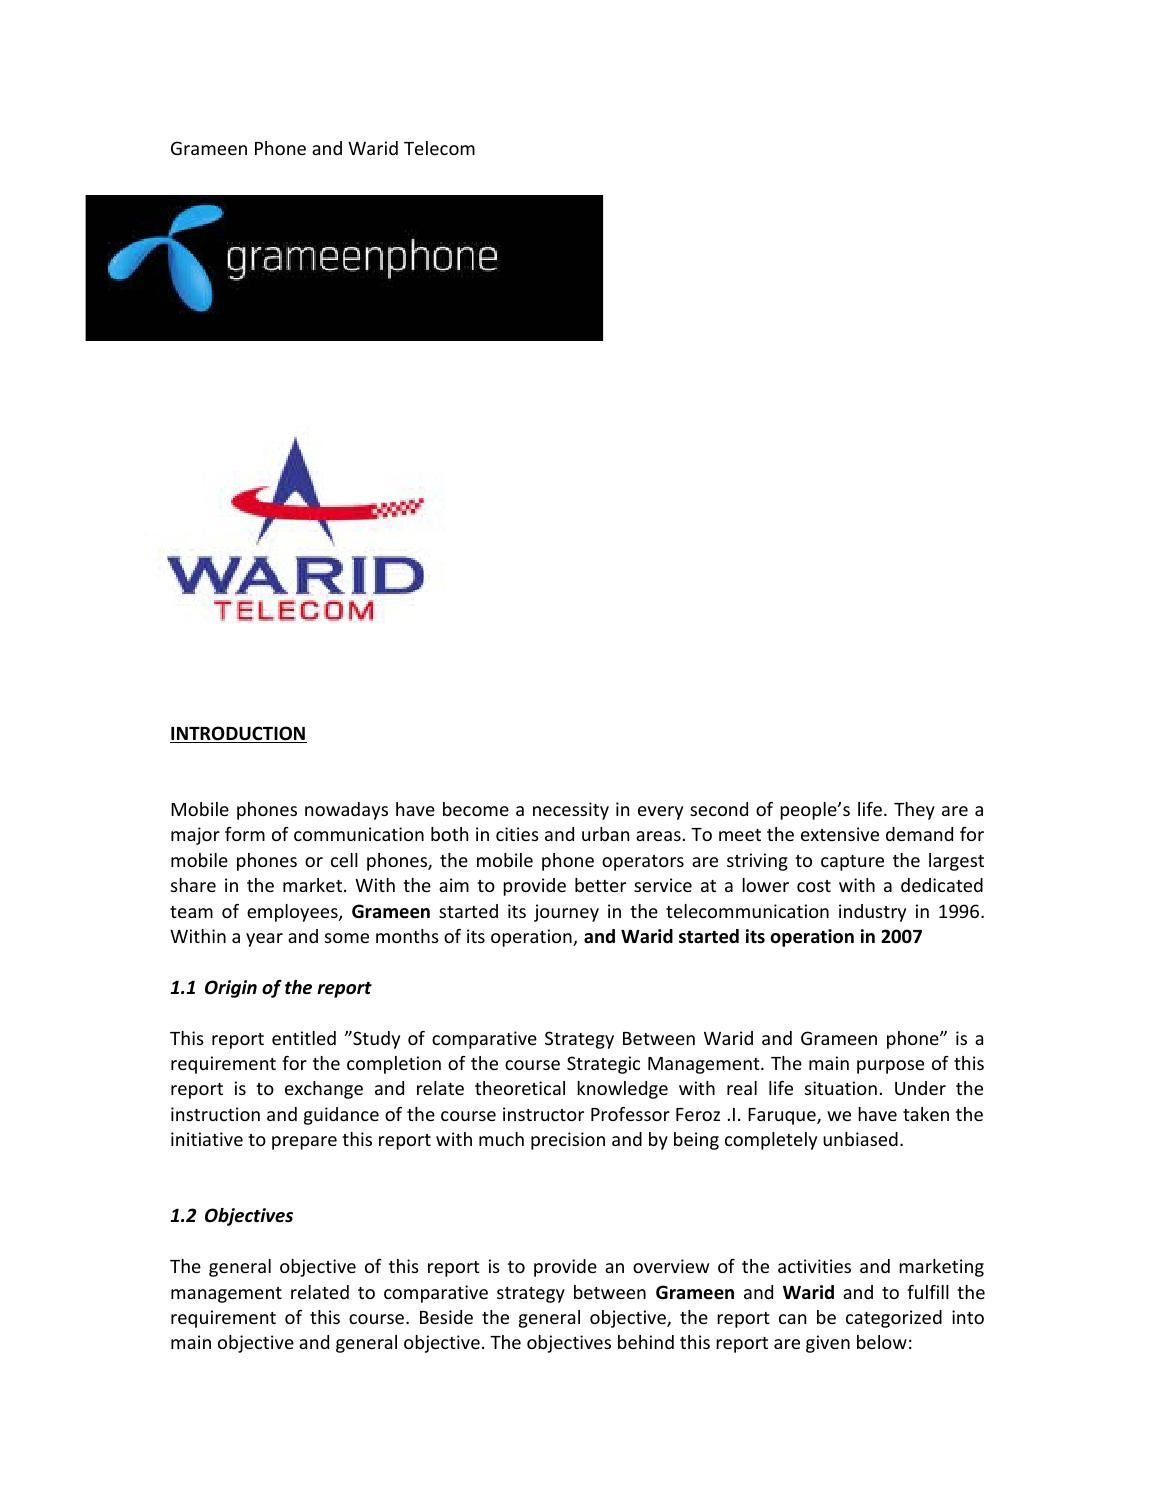 project on warid telecom About warid telecom warid telecom is one of the cellular service providers in pakistan launched in may 2005 the company is now 100% owned company of the abu dhabi group and offers state-of-the-art telecommunication services at over 7,000 destinations in pakistan.